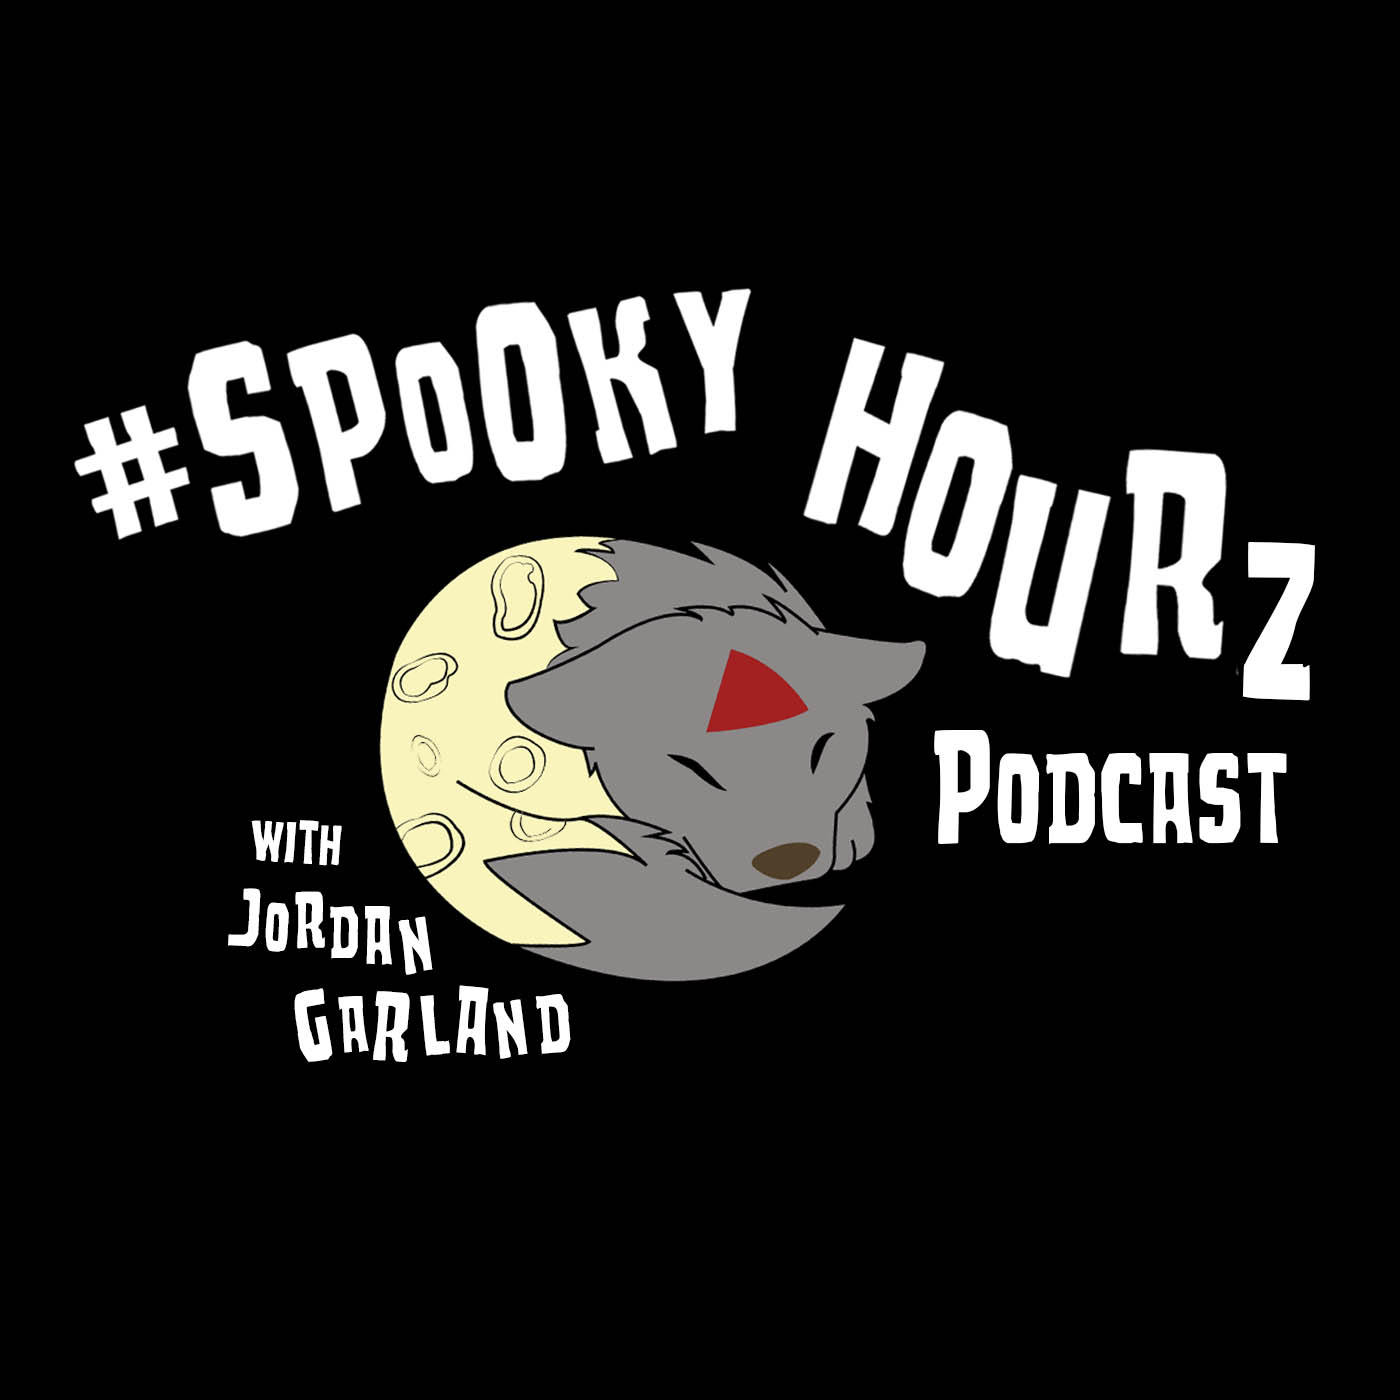 Spooky Hourz Podcast